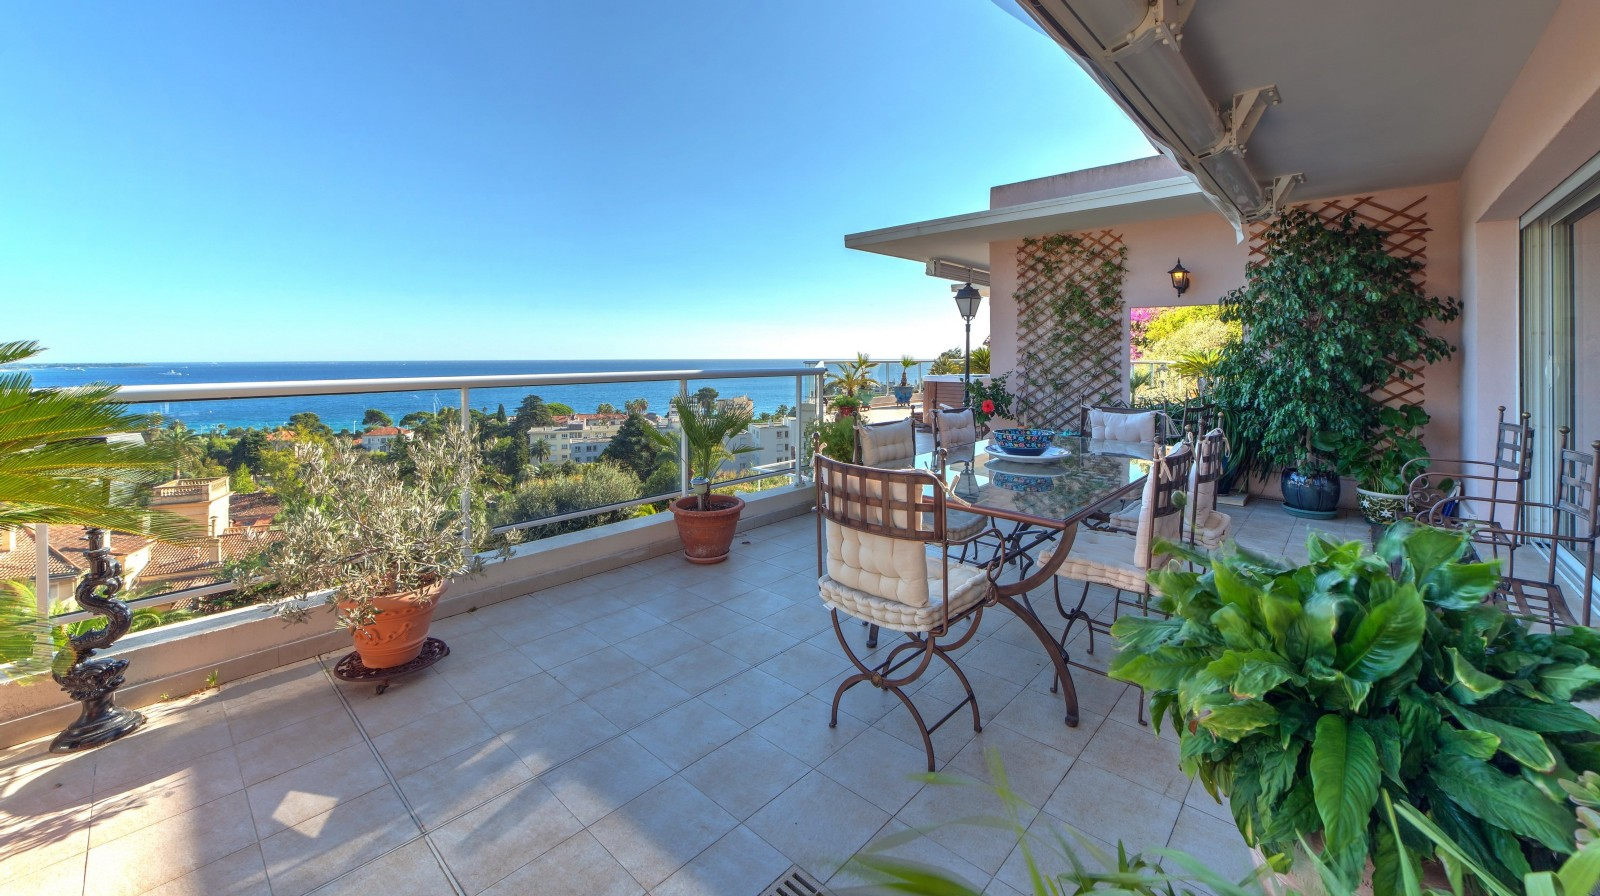 Cannes Croix des Gardes French Riviera 3-Bedroom Penthouse Apartment